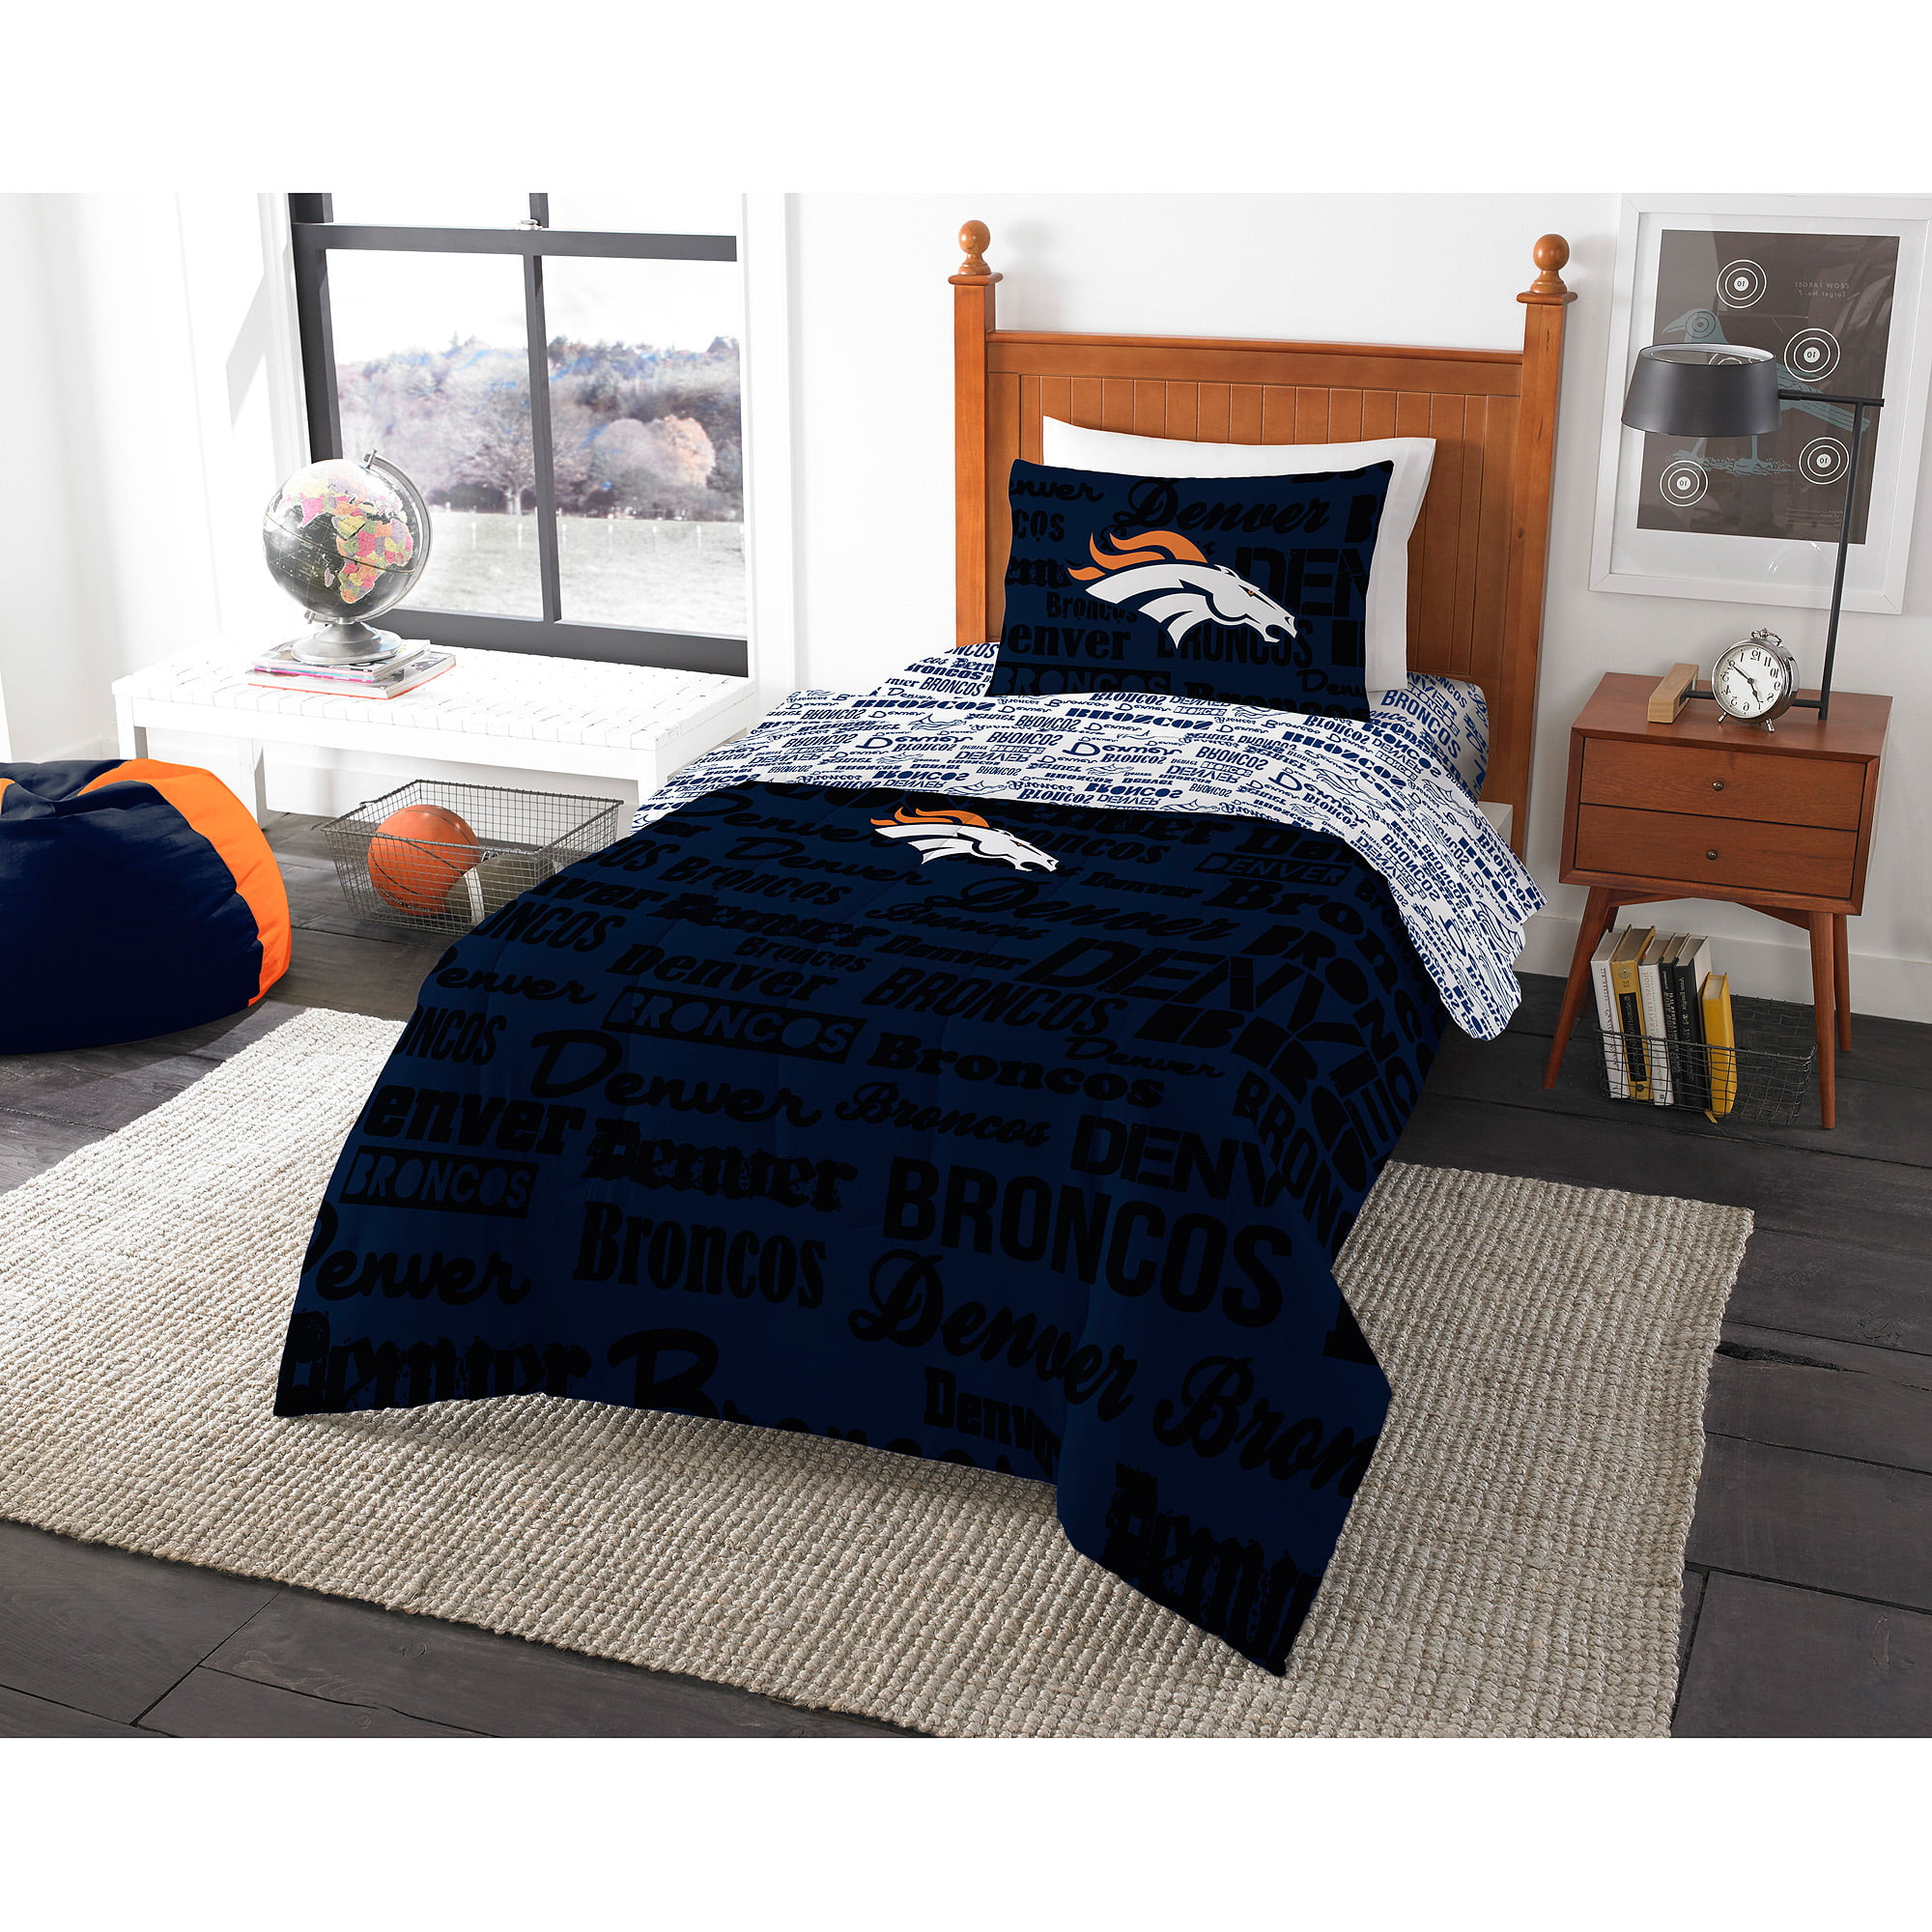 Superieur NFL Denver Broncos Bed In A Bag Complete Bedding Set   Walmart.com